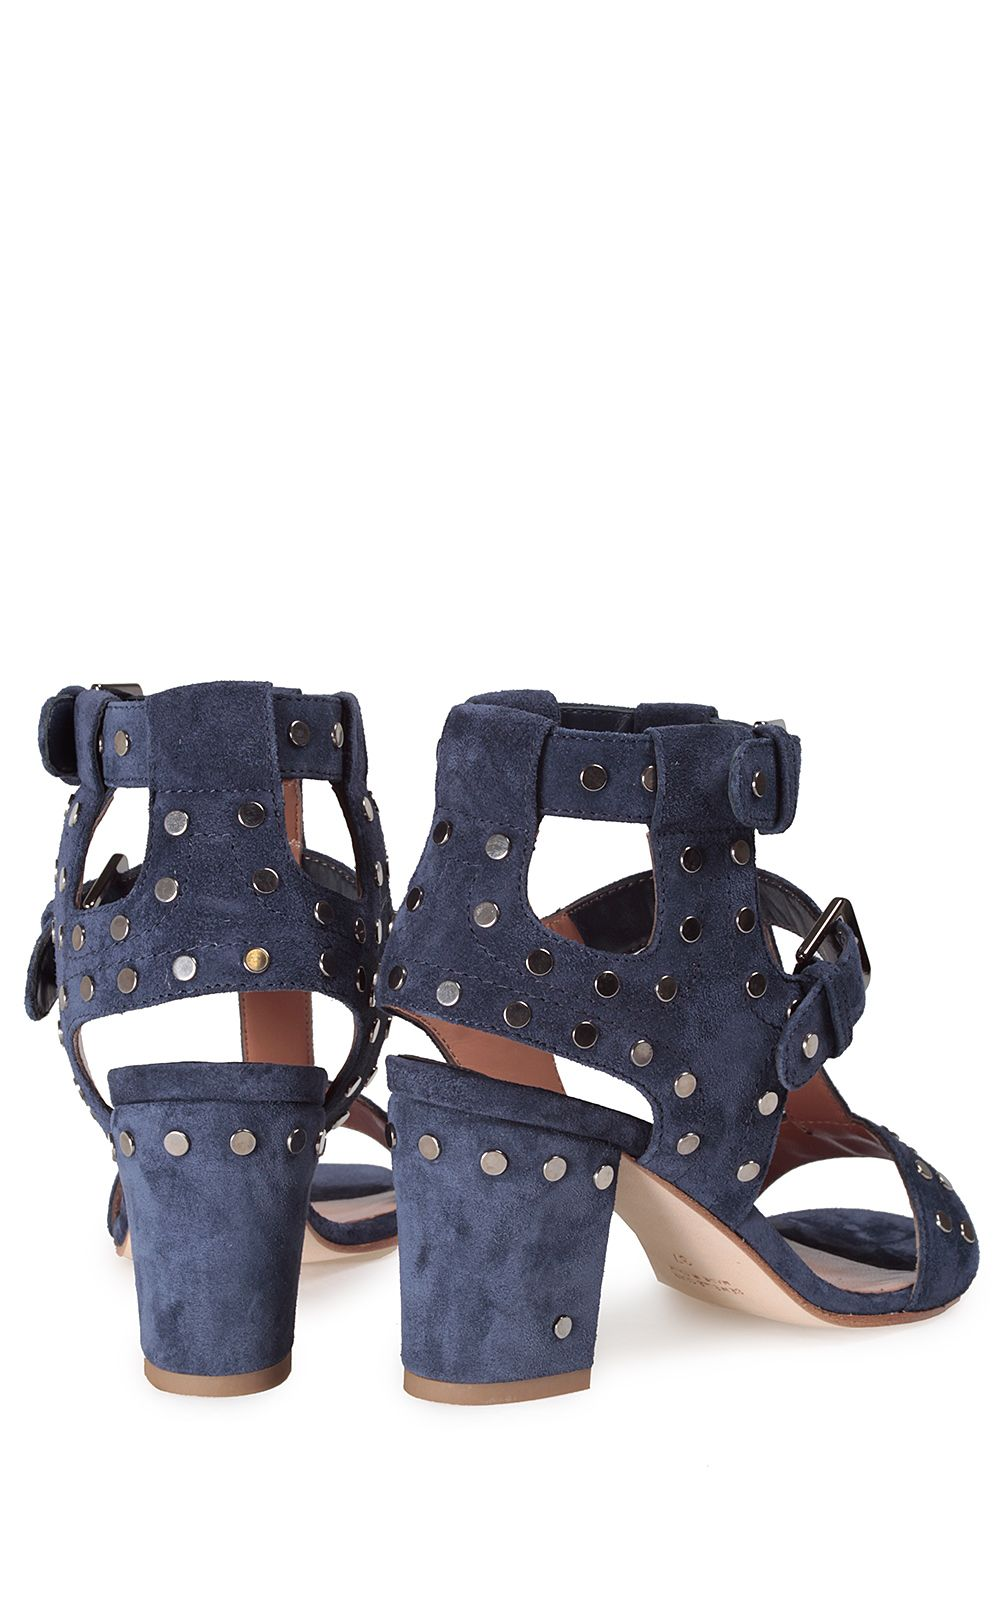 quality original buy cheap with credit card Laurence Dacade Suede T-Strap Wedges cheap sale HJGPSKpFKL